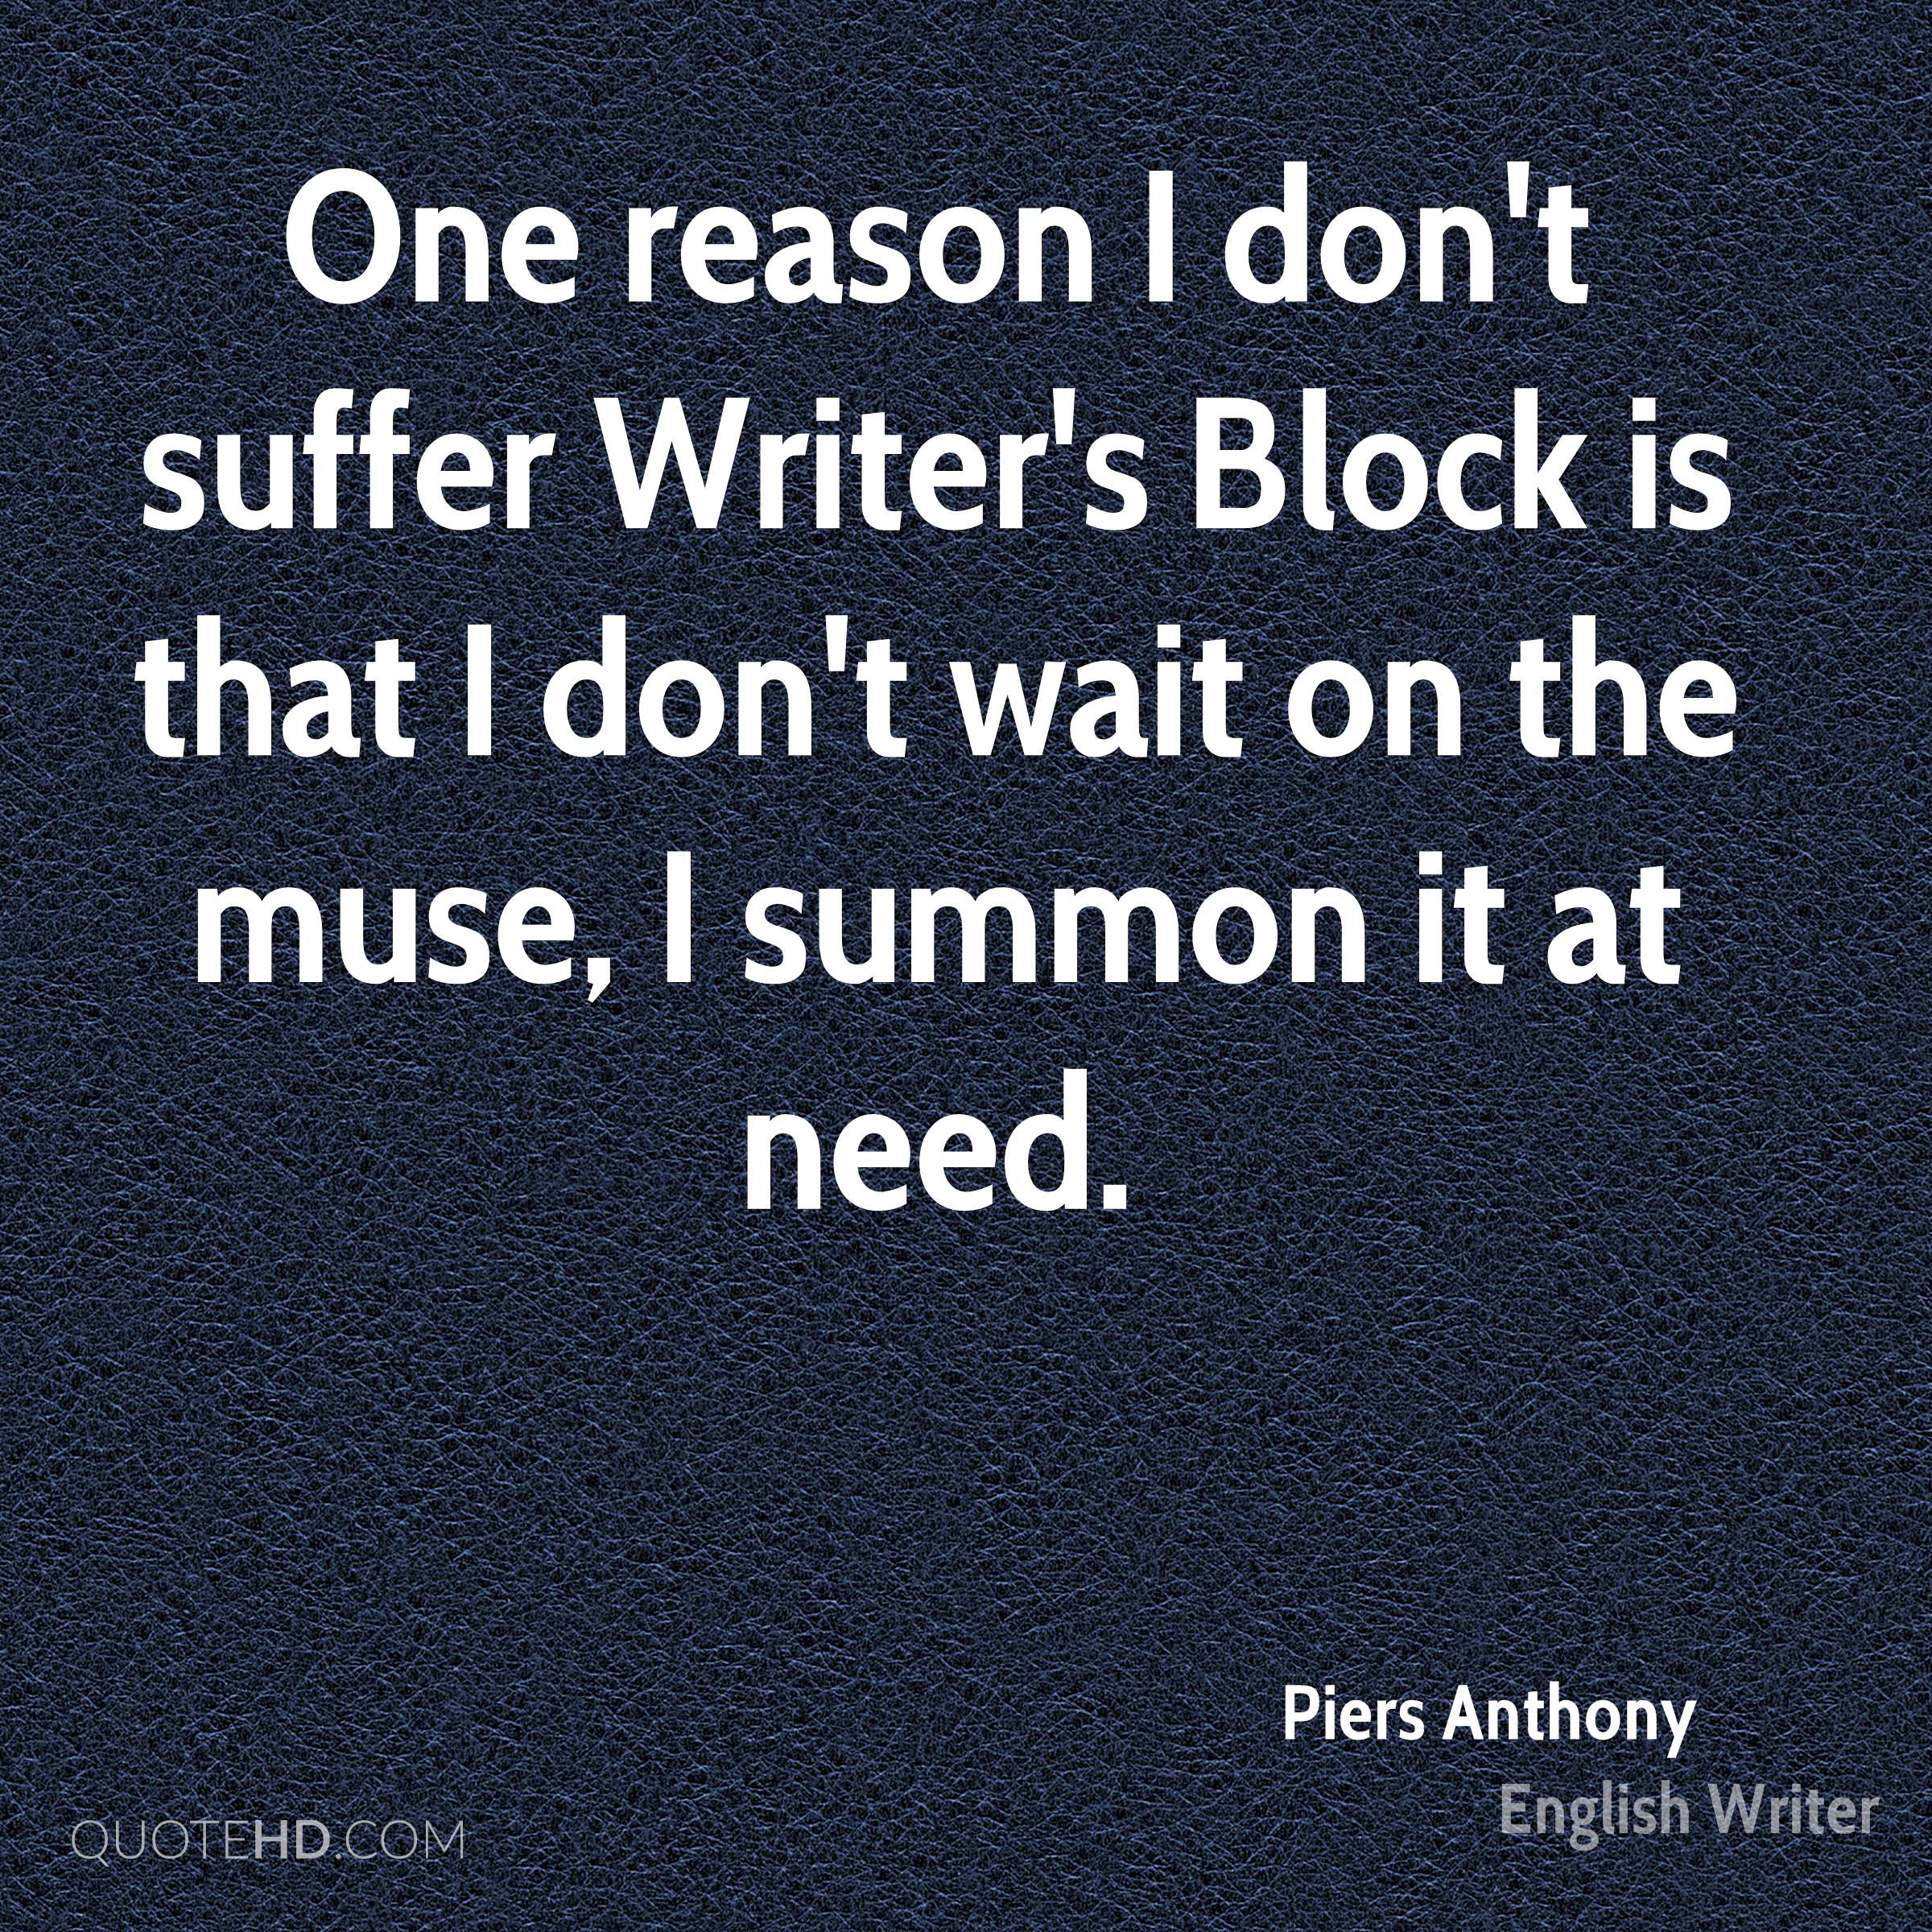 One reason I don't suffer Writer's Block is that I don't wait on the muse, I summon it at need.